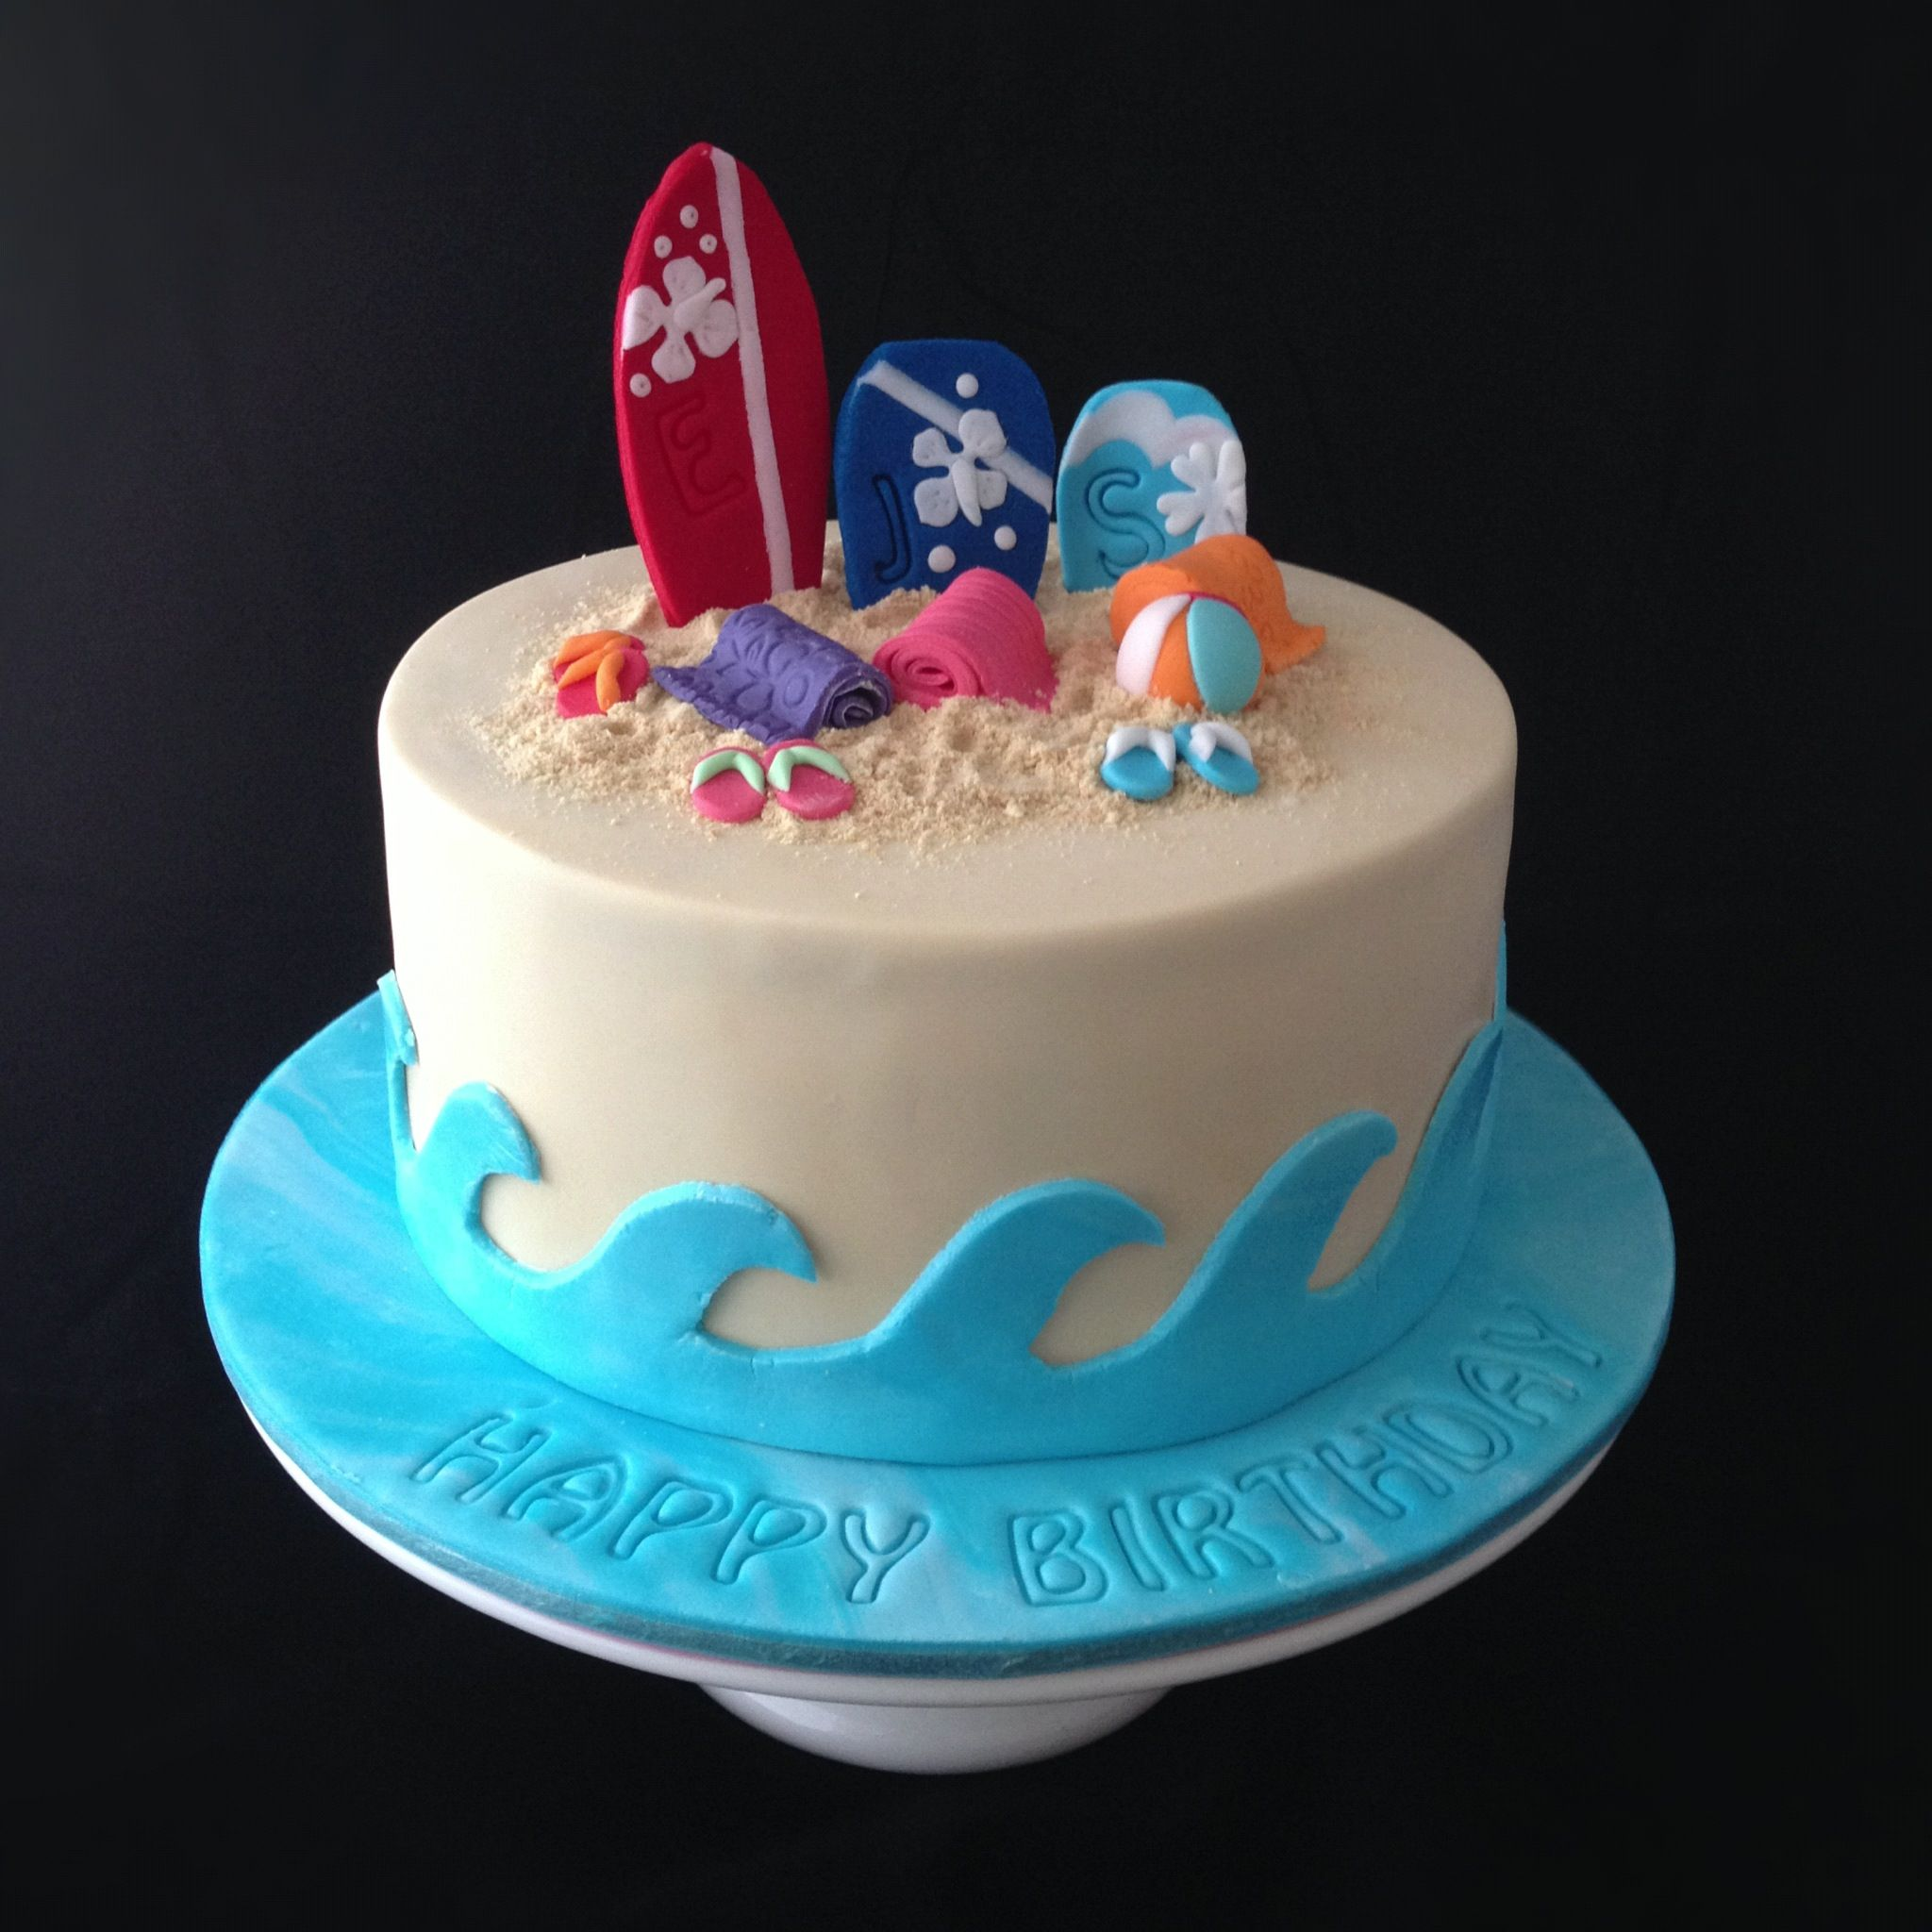 Birthday Cakes - A beach themed cake for three beach babe sisters that all celebrate their birthdays in January! Complete with edible sand, surf board, boogie boards, beach towels, beach ball and thongs!